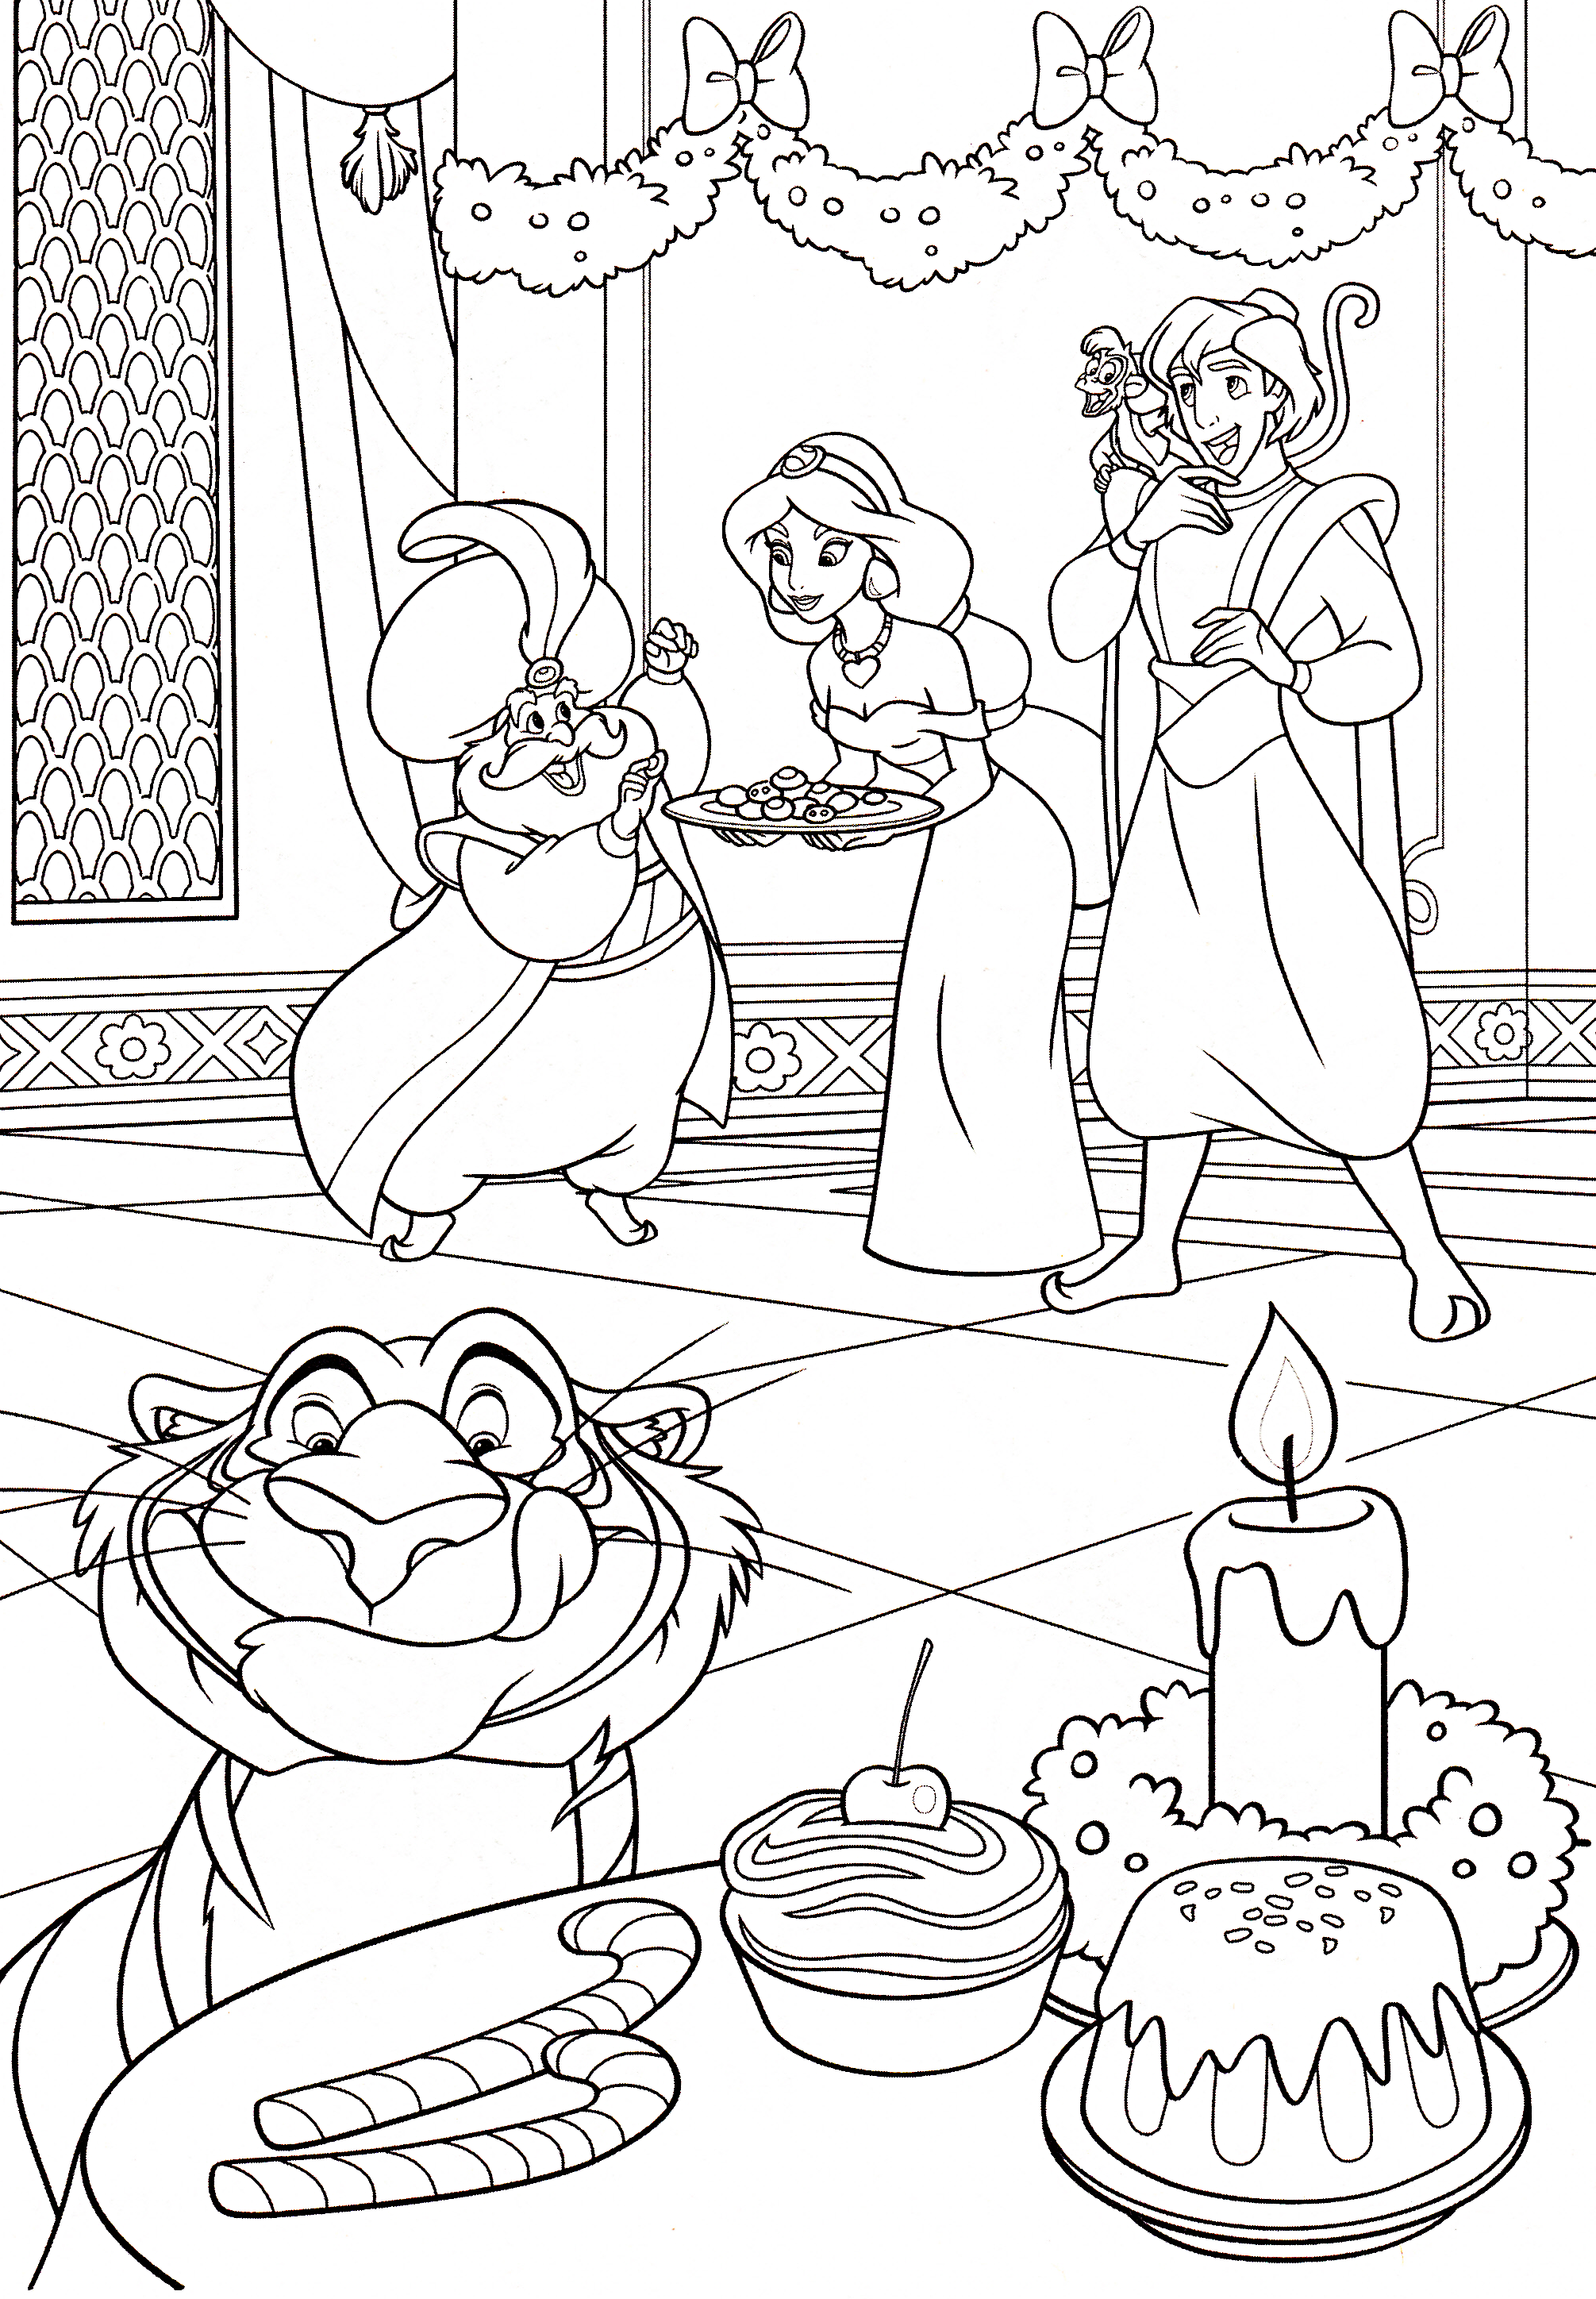 Walt disney Coloring Pages - The Sultan, Princess Jasmine, Prince Aladdin, Abu & Rajah